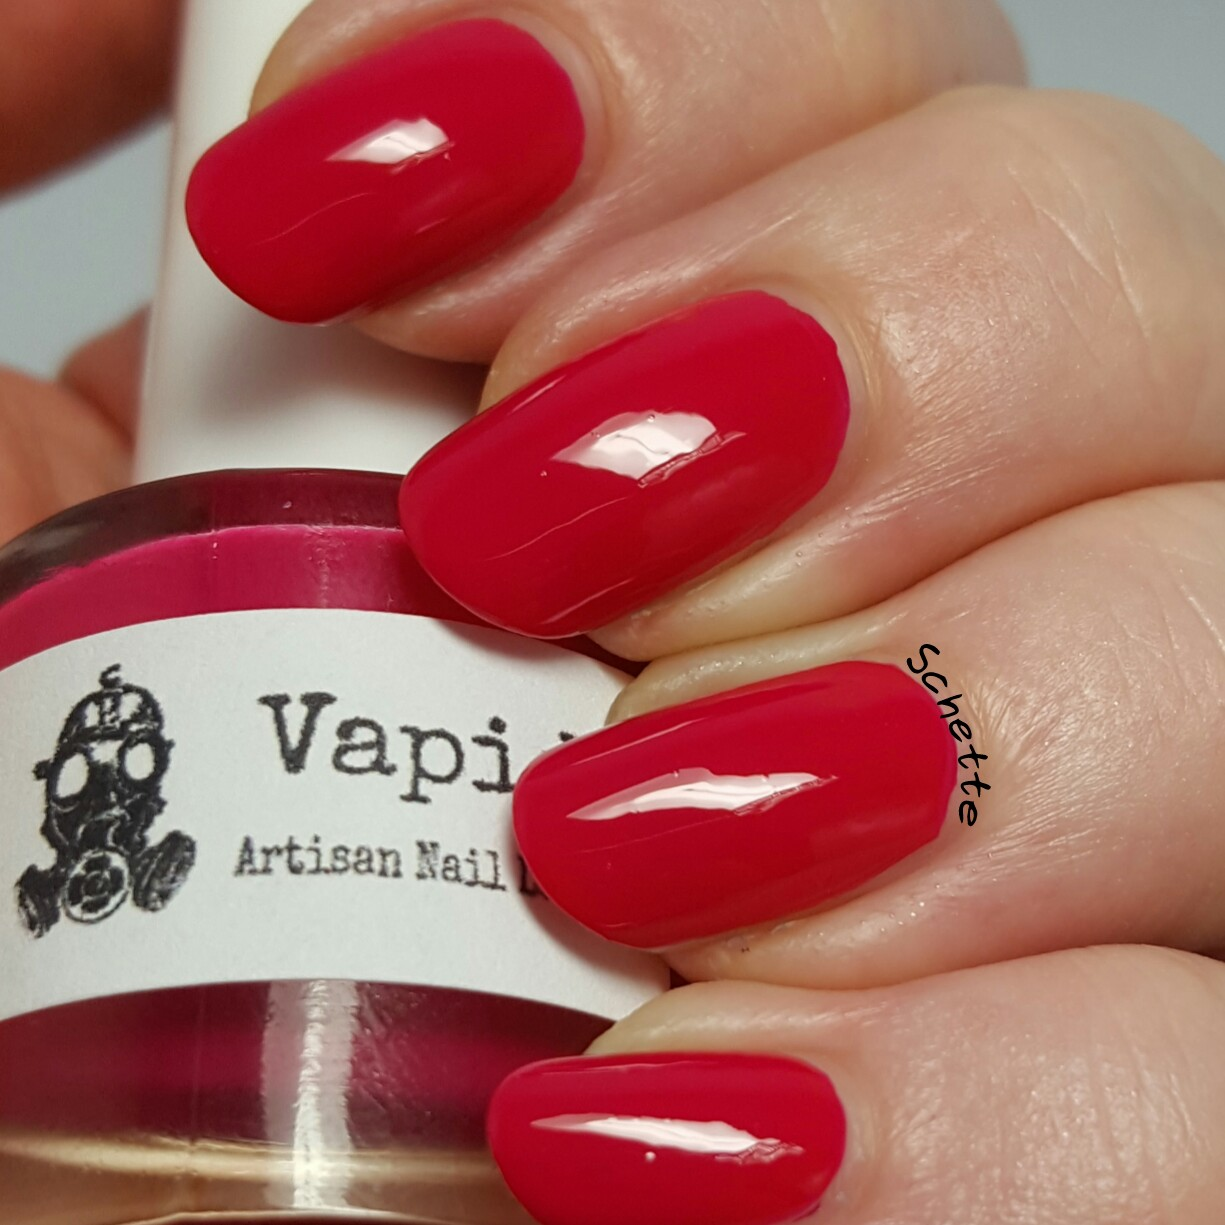 Vapid Lacquer - Snuggle Monster